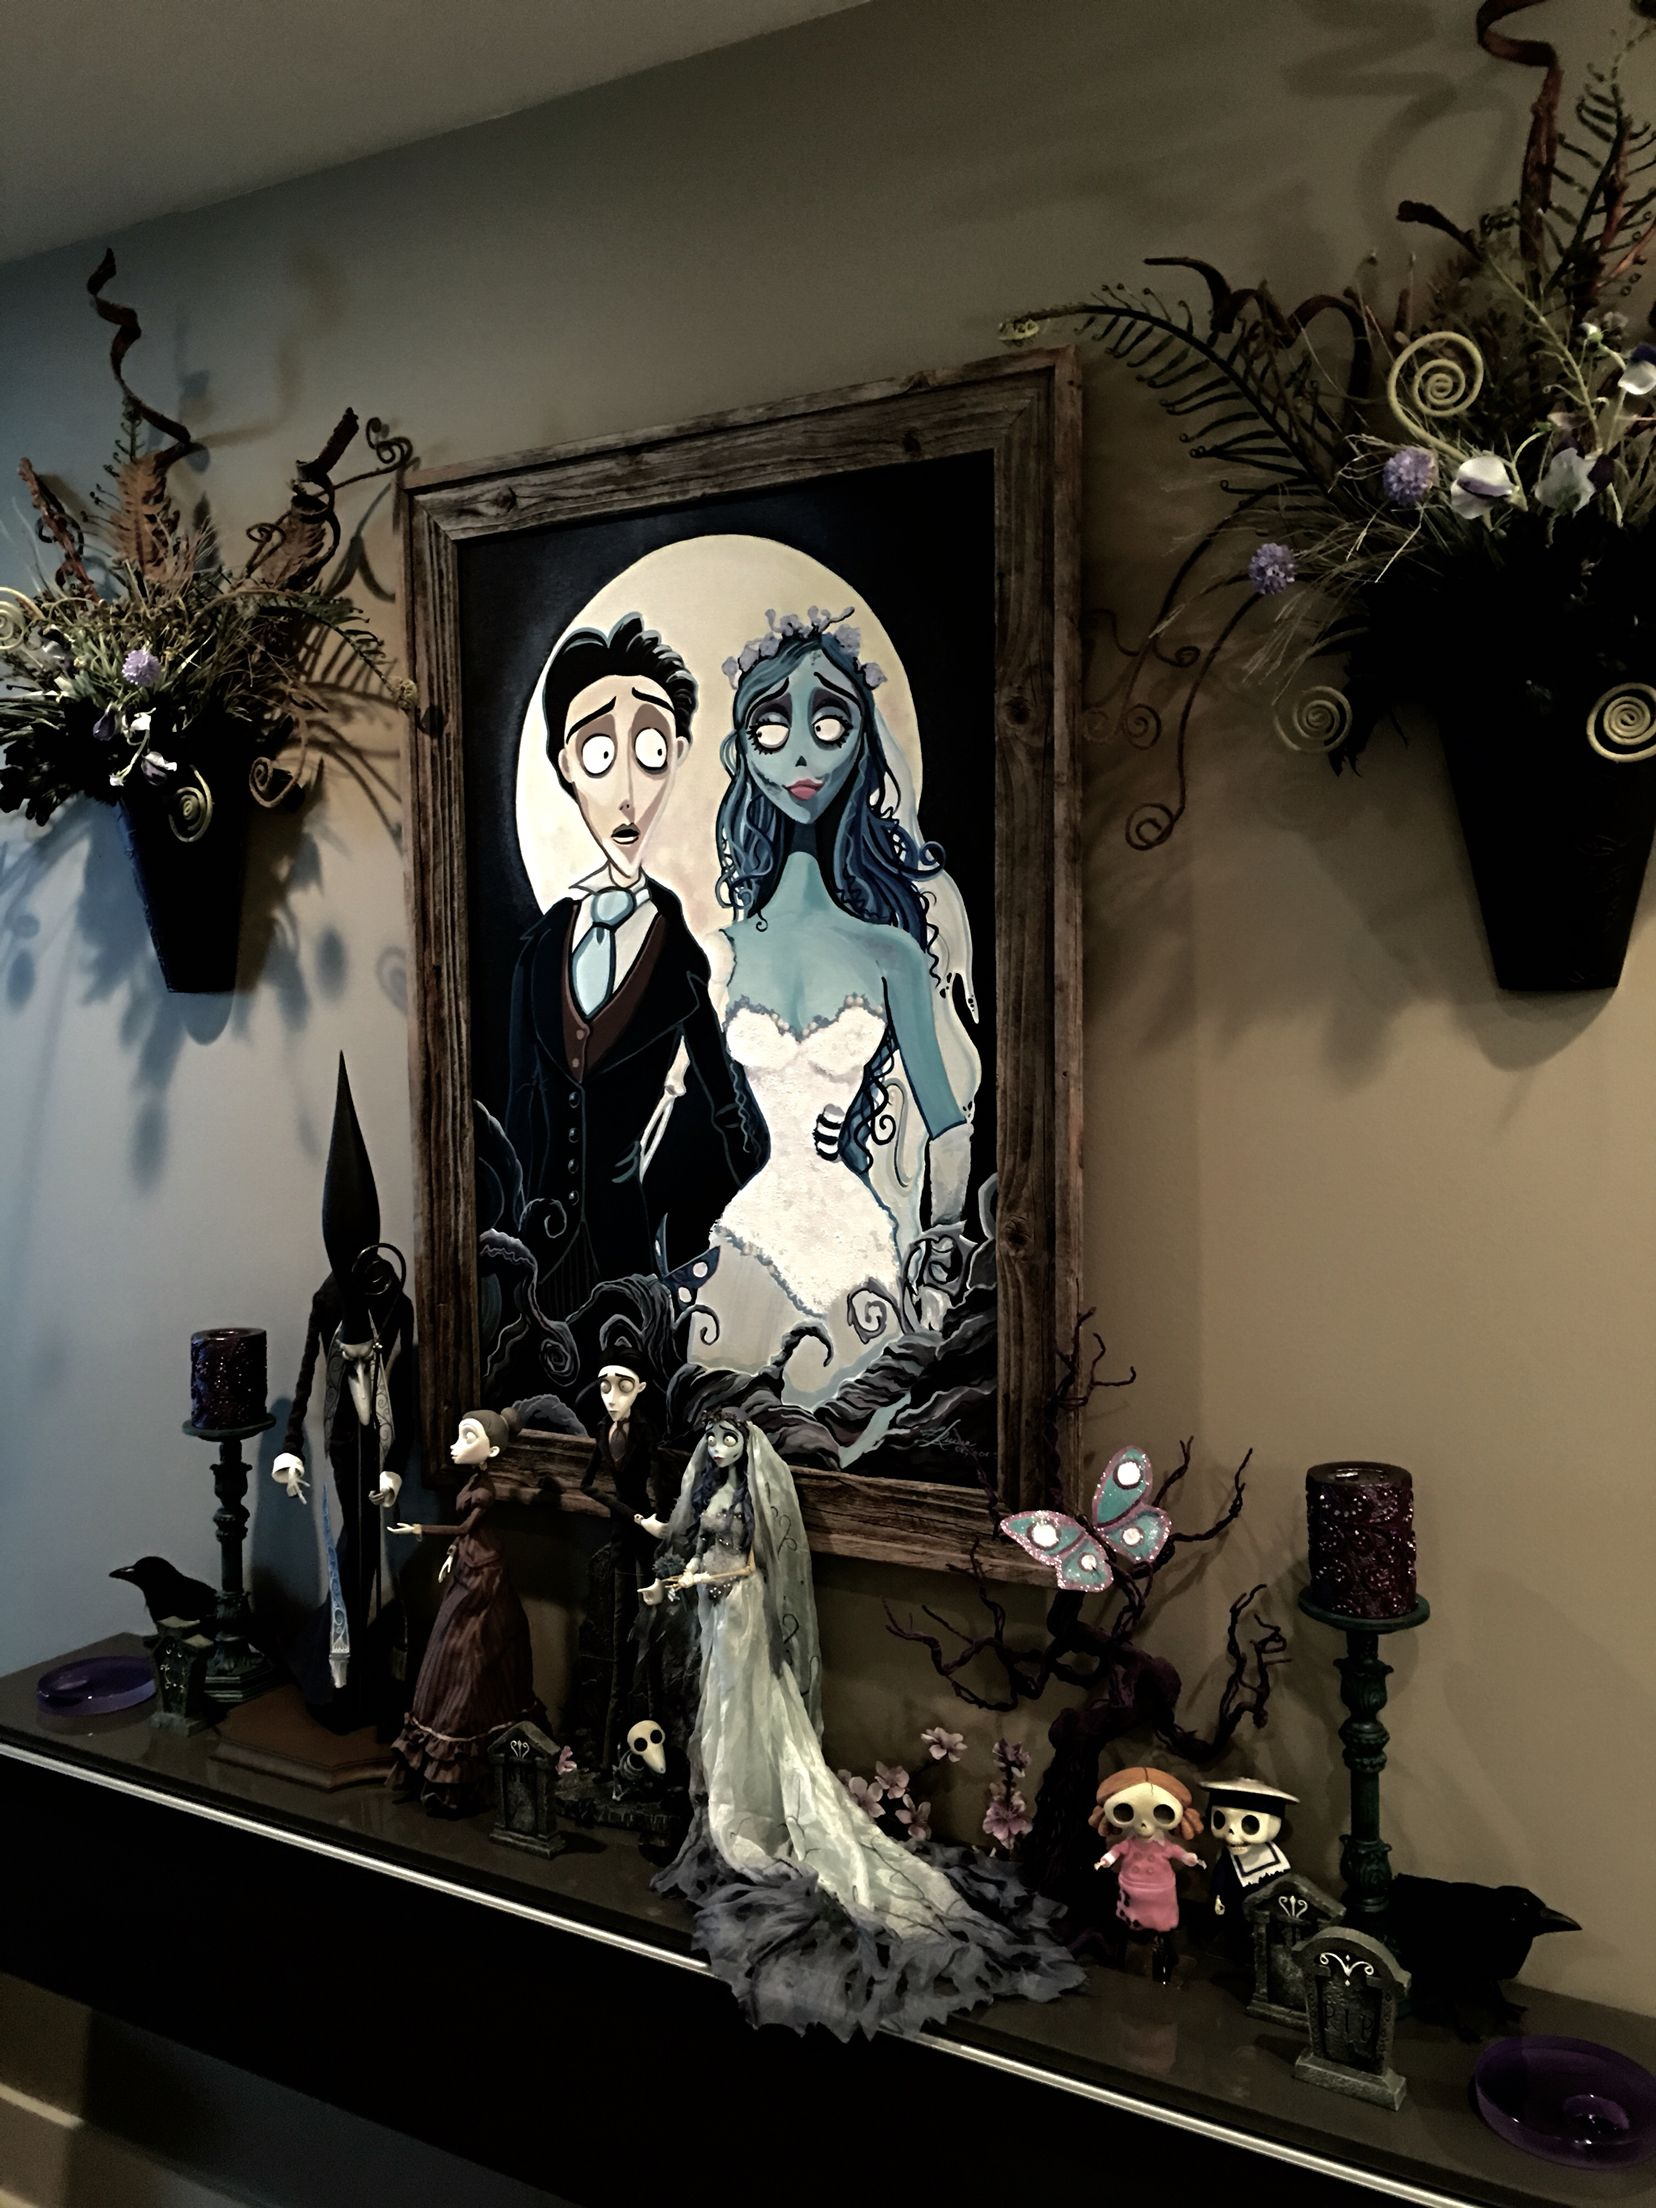 Corpse Bride Painting And Display By Felipe Rivera